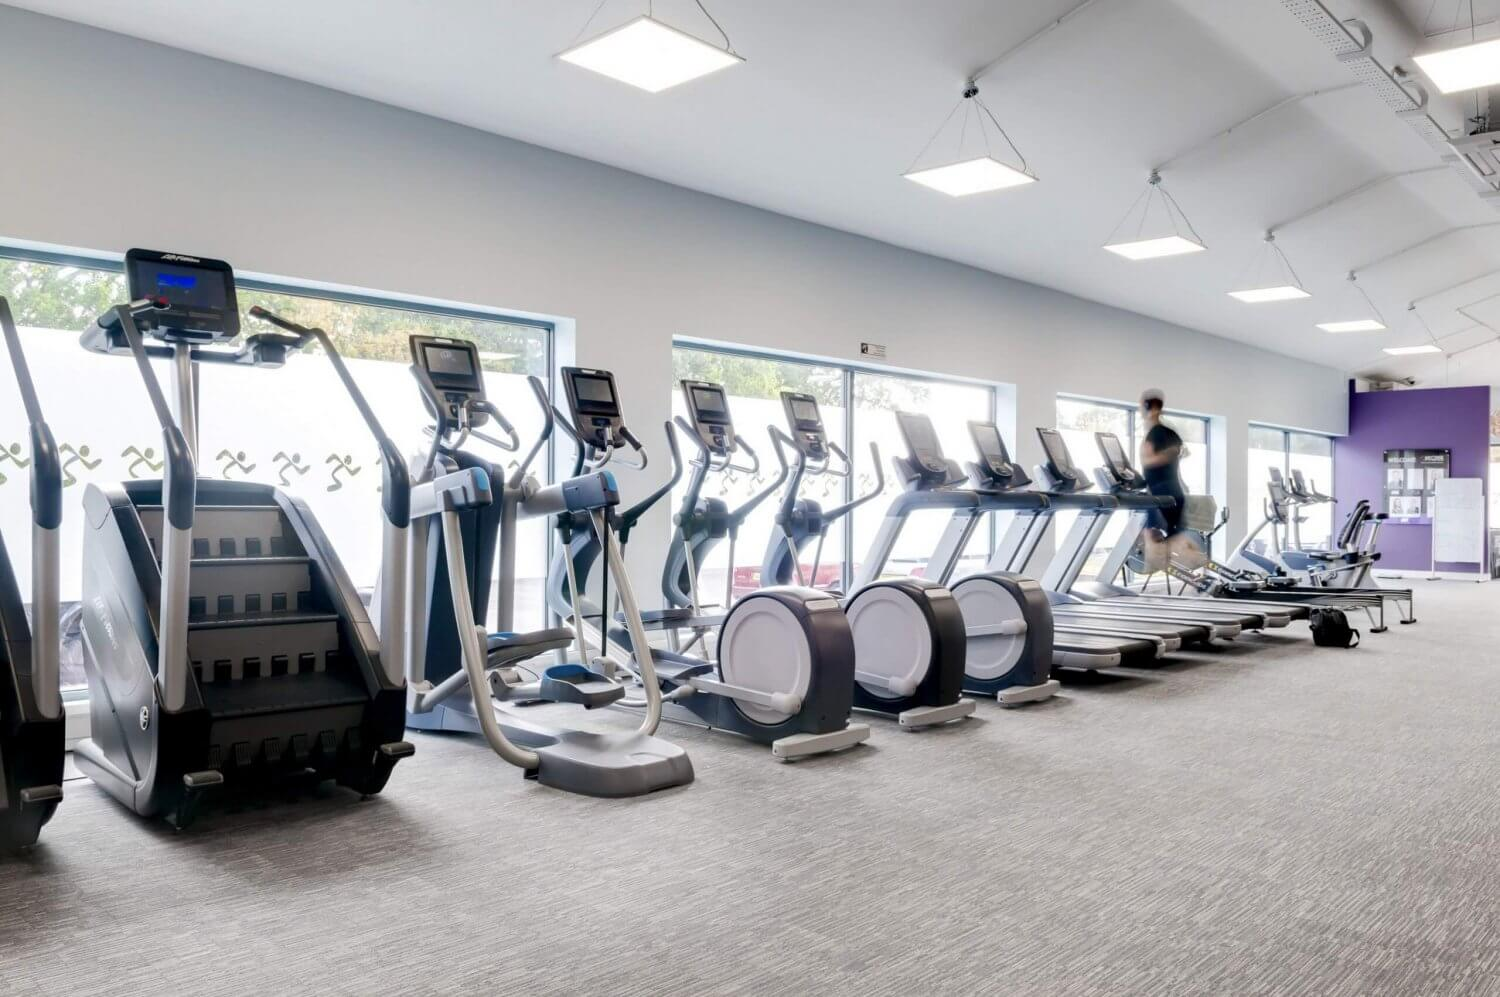 Cardio Equipment | The Mustcard